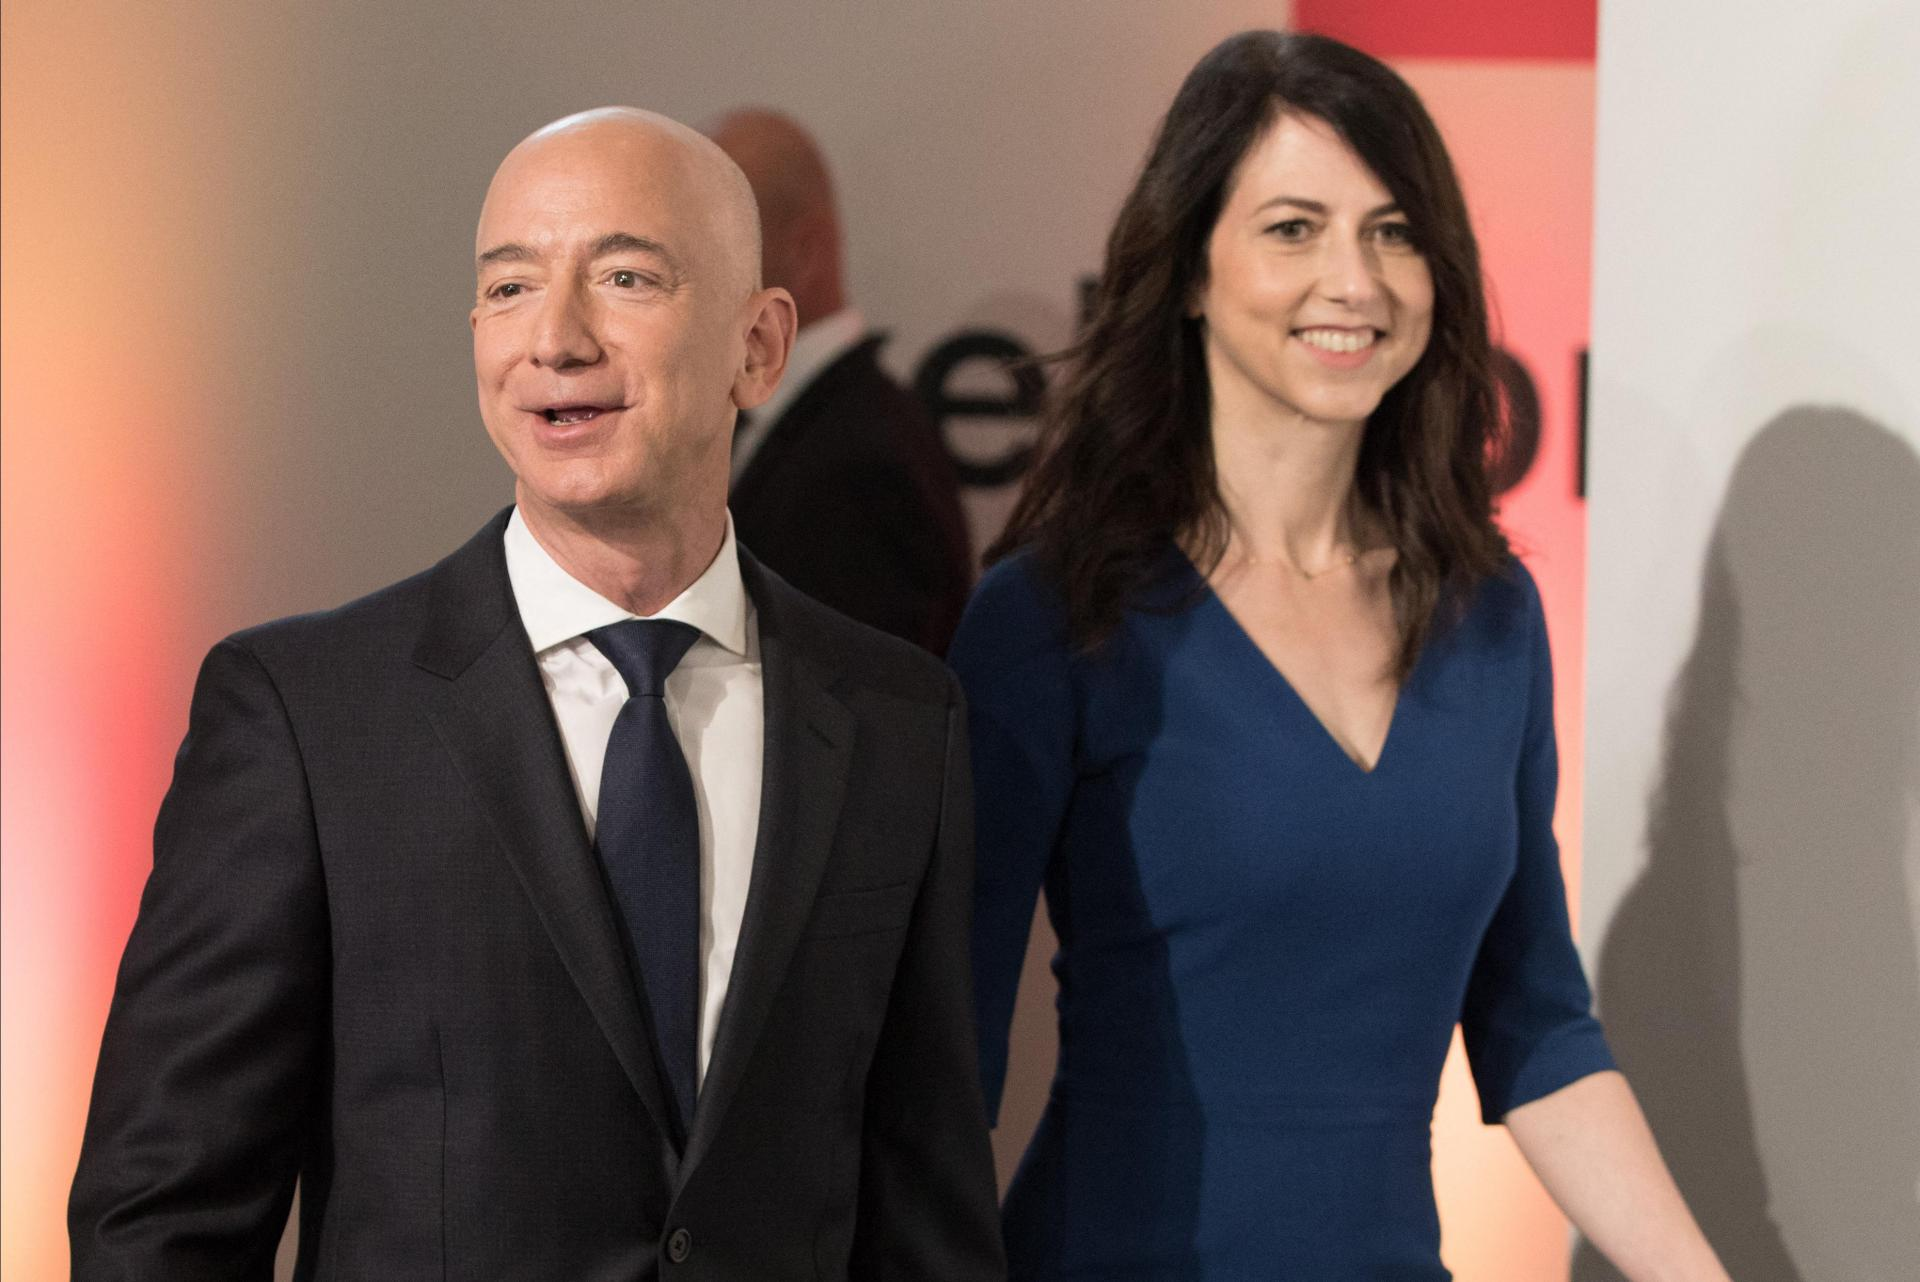 Another high-profile divorce was that of Amazon founder Jeff Bezos and his wife MacKenzie, two years ago. Photo: Jörg Carstensen/DPA/AFP